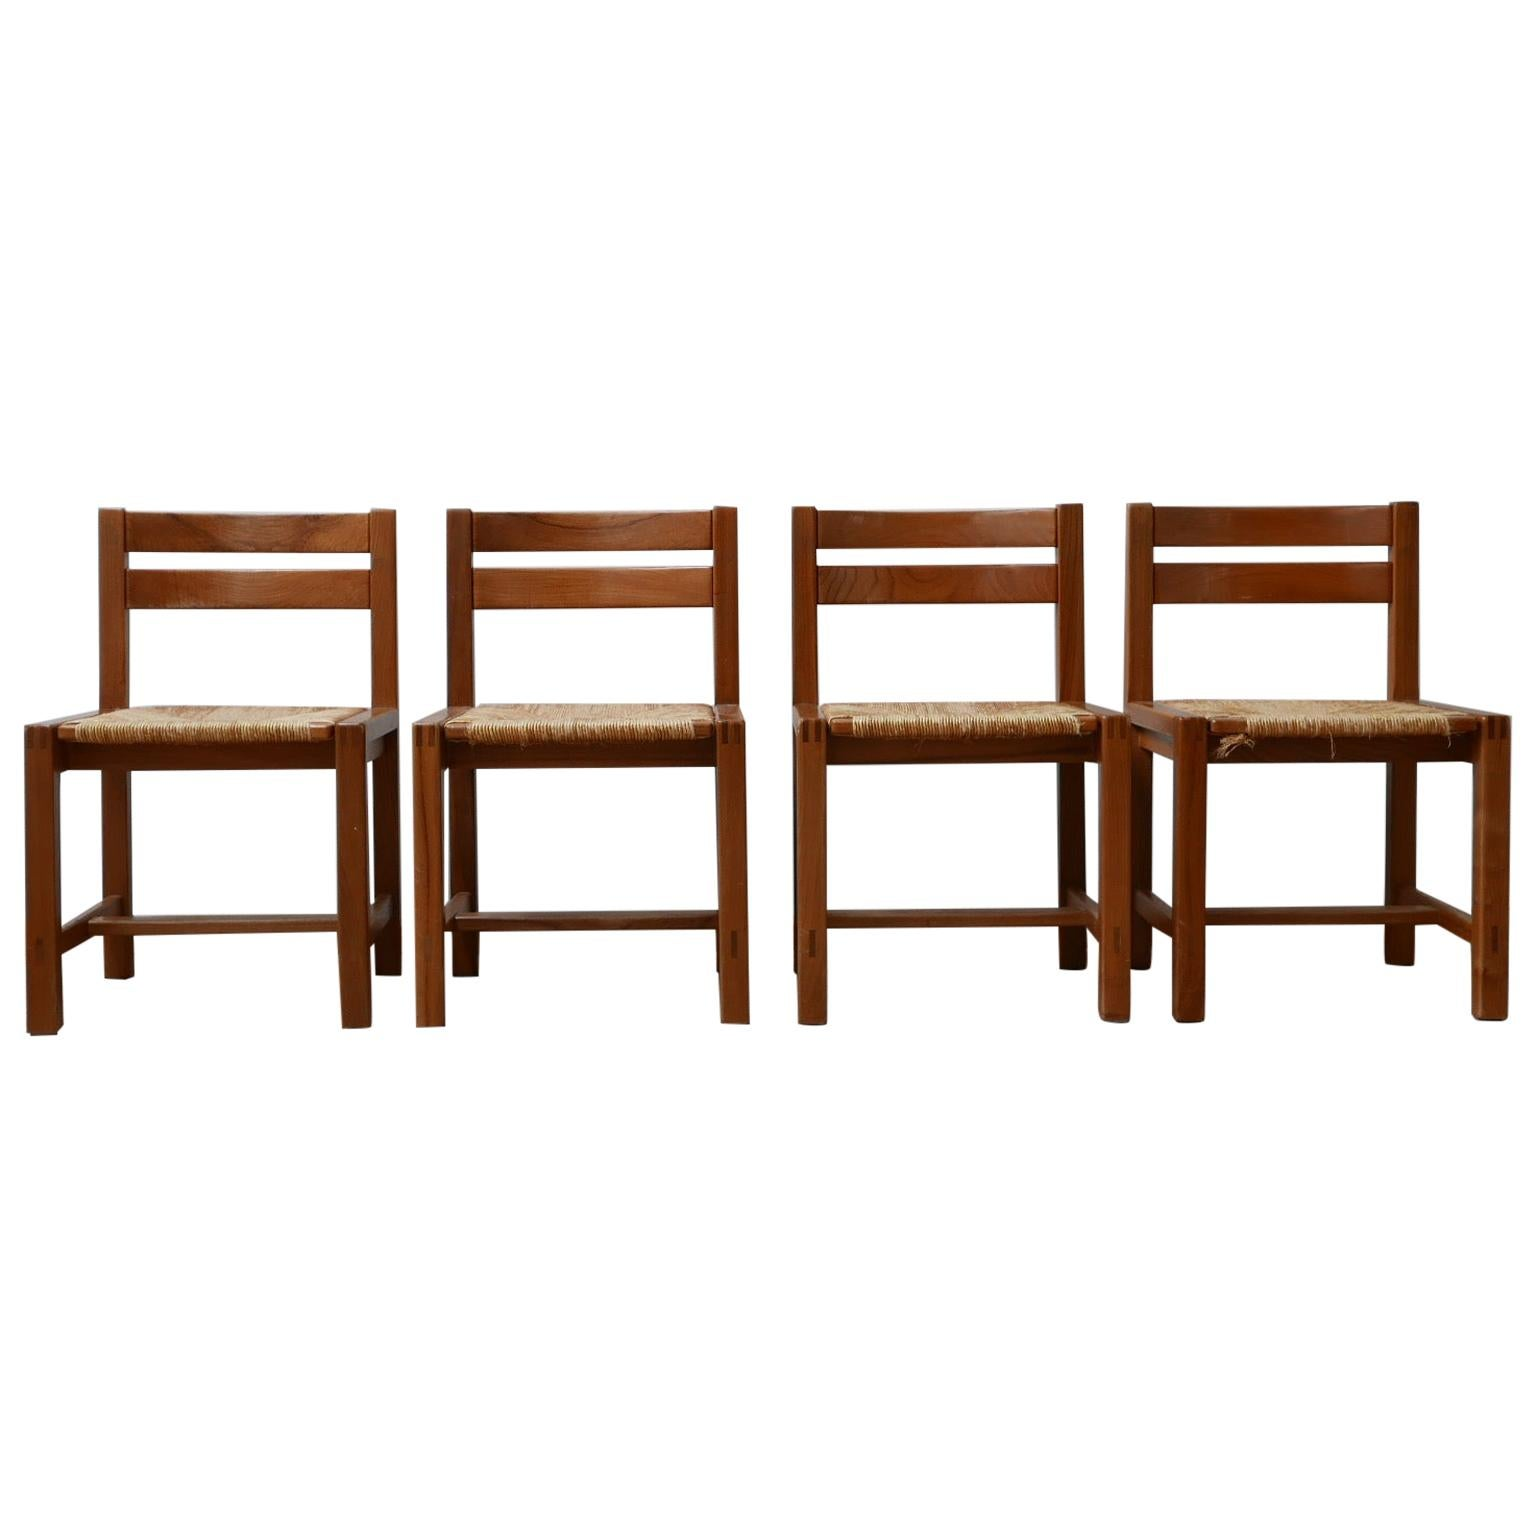 Maison Regain Midcentury Cord Dining Chairs '4'